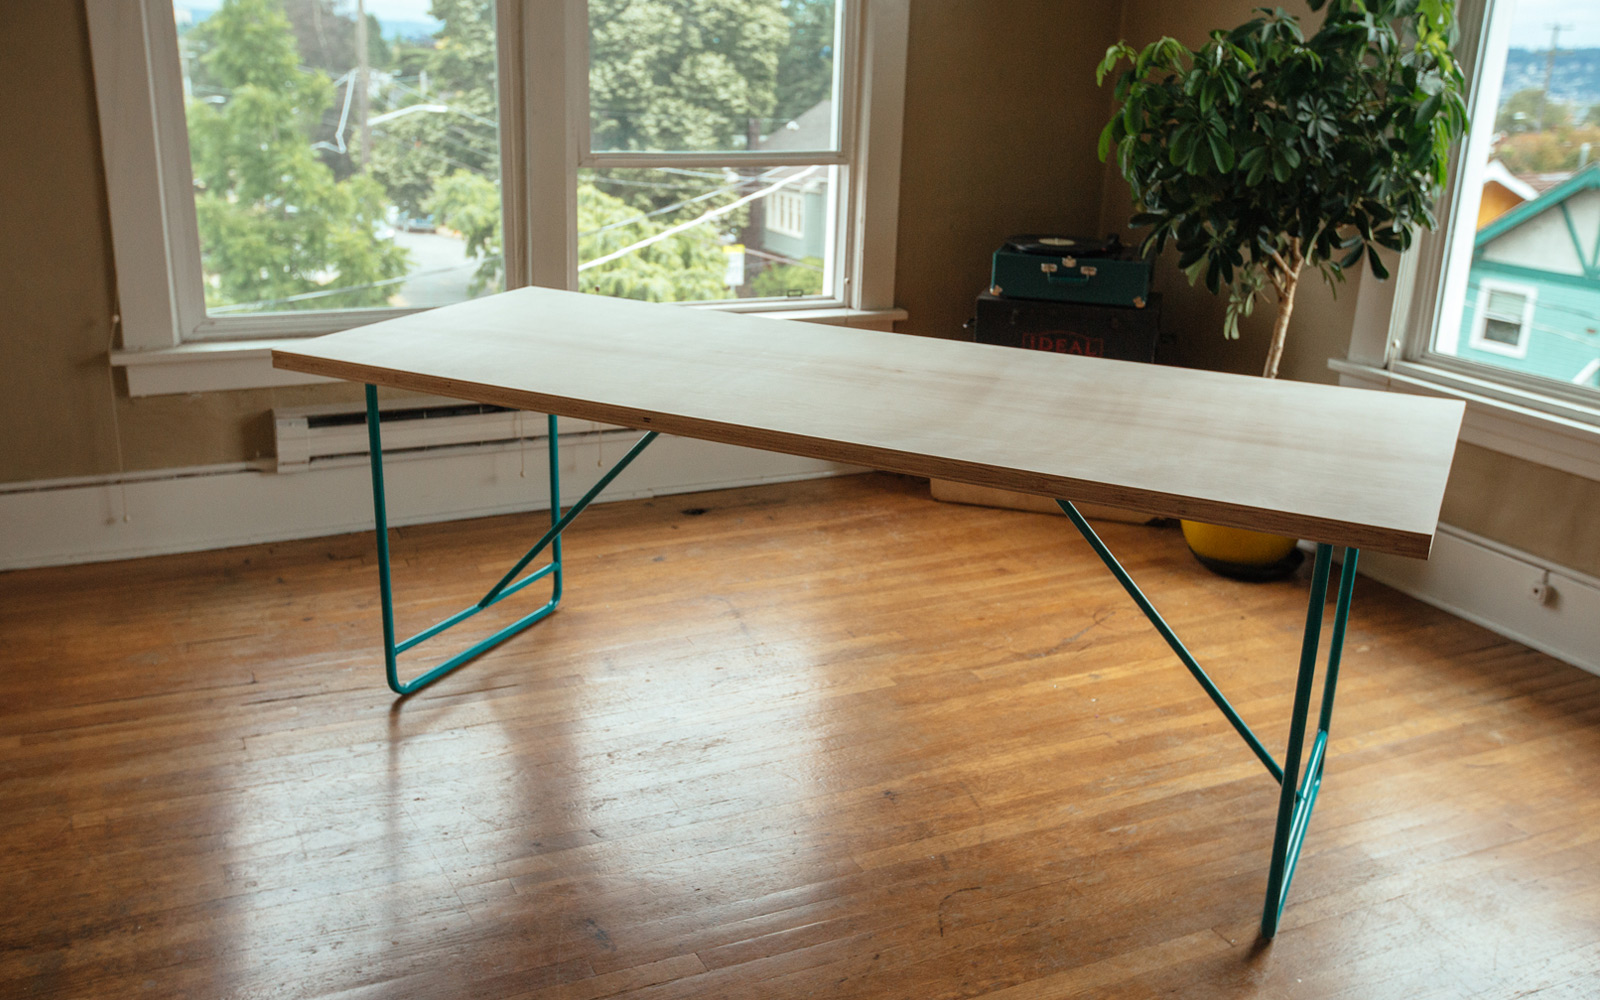 making a dining room table | How to Make a DIY Mid Century Modern Dining Room Table ...